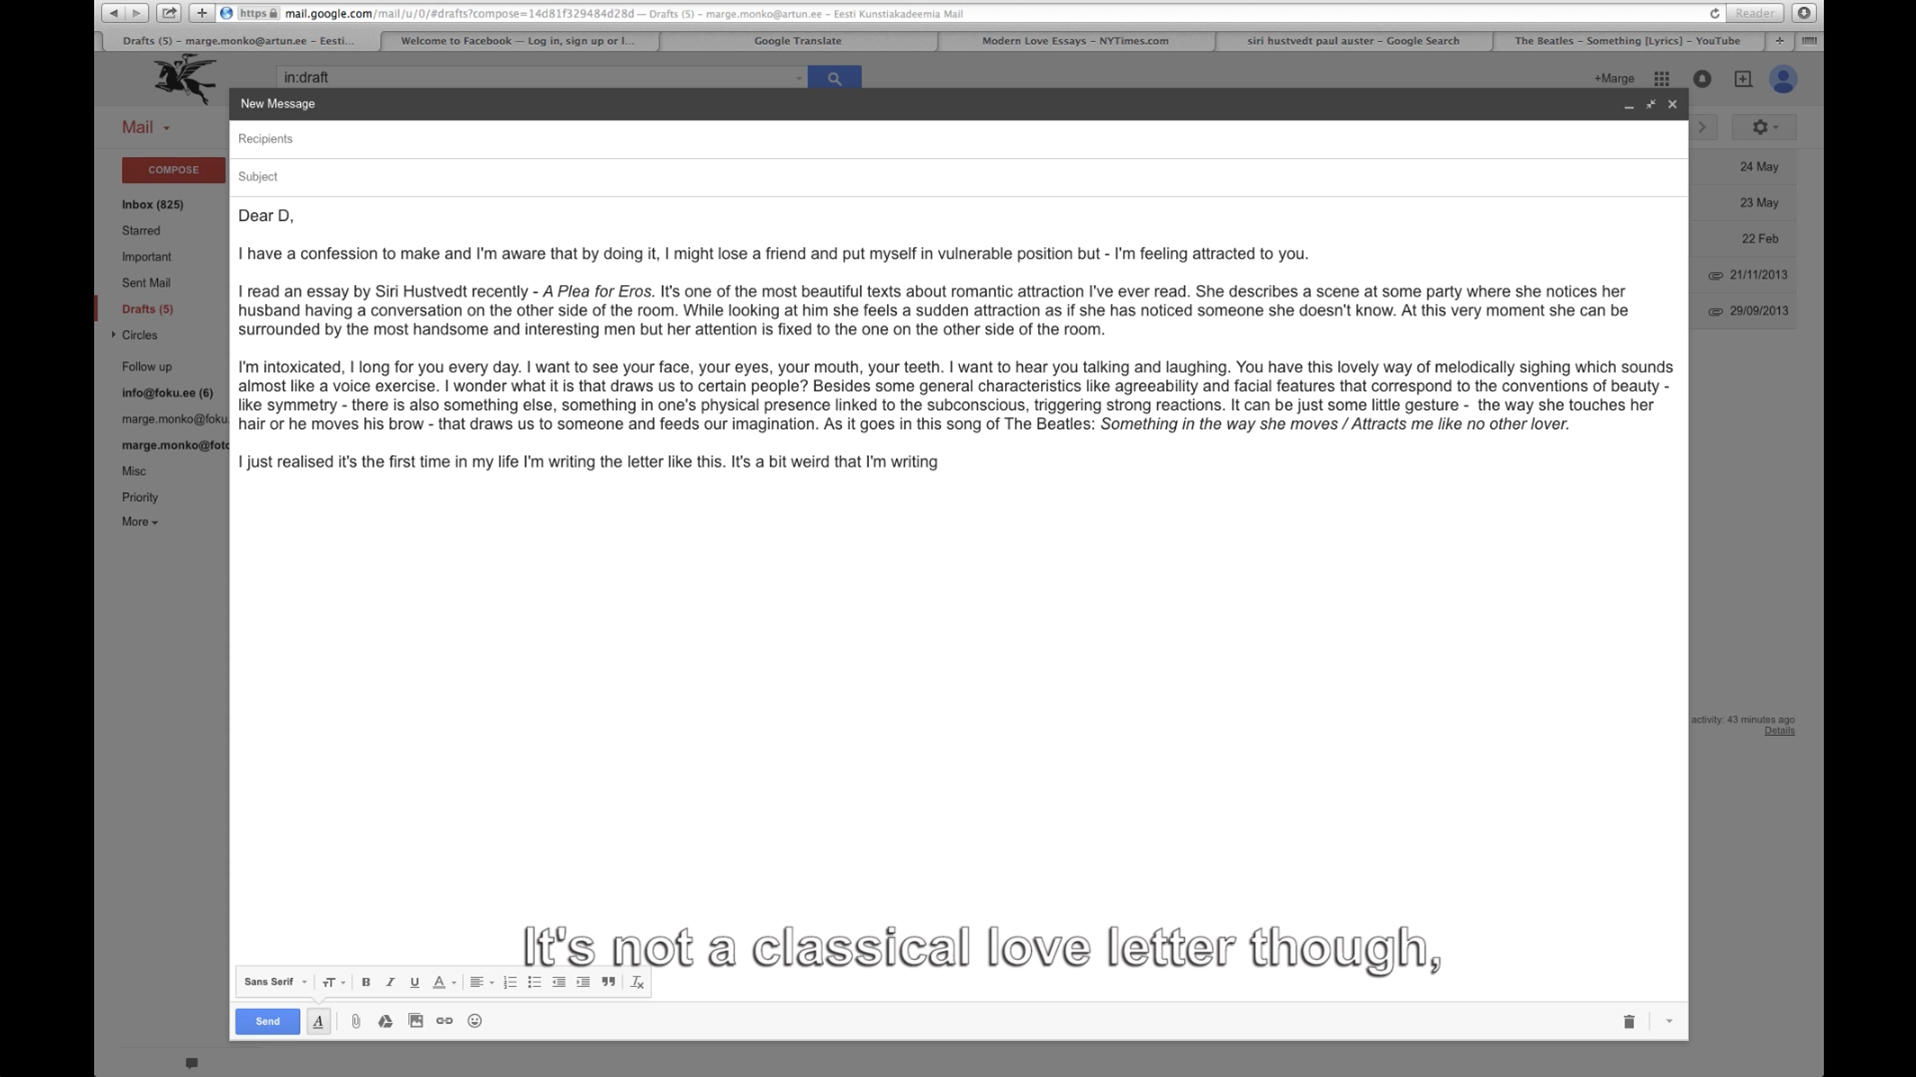 15 Dear D classical love letter Marge Monko